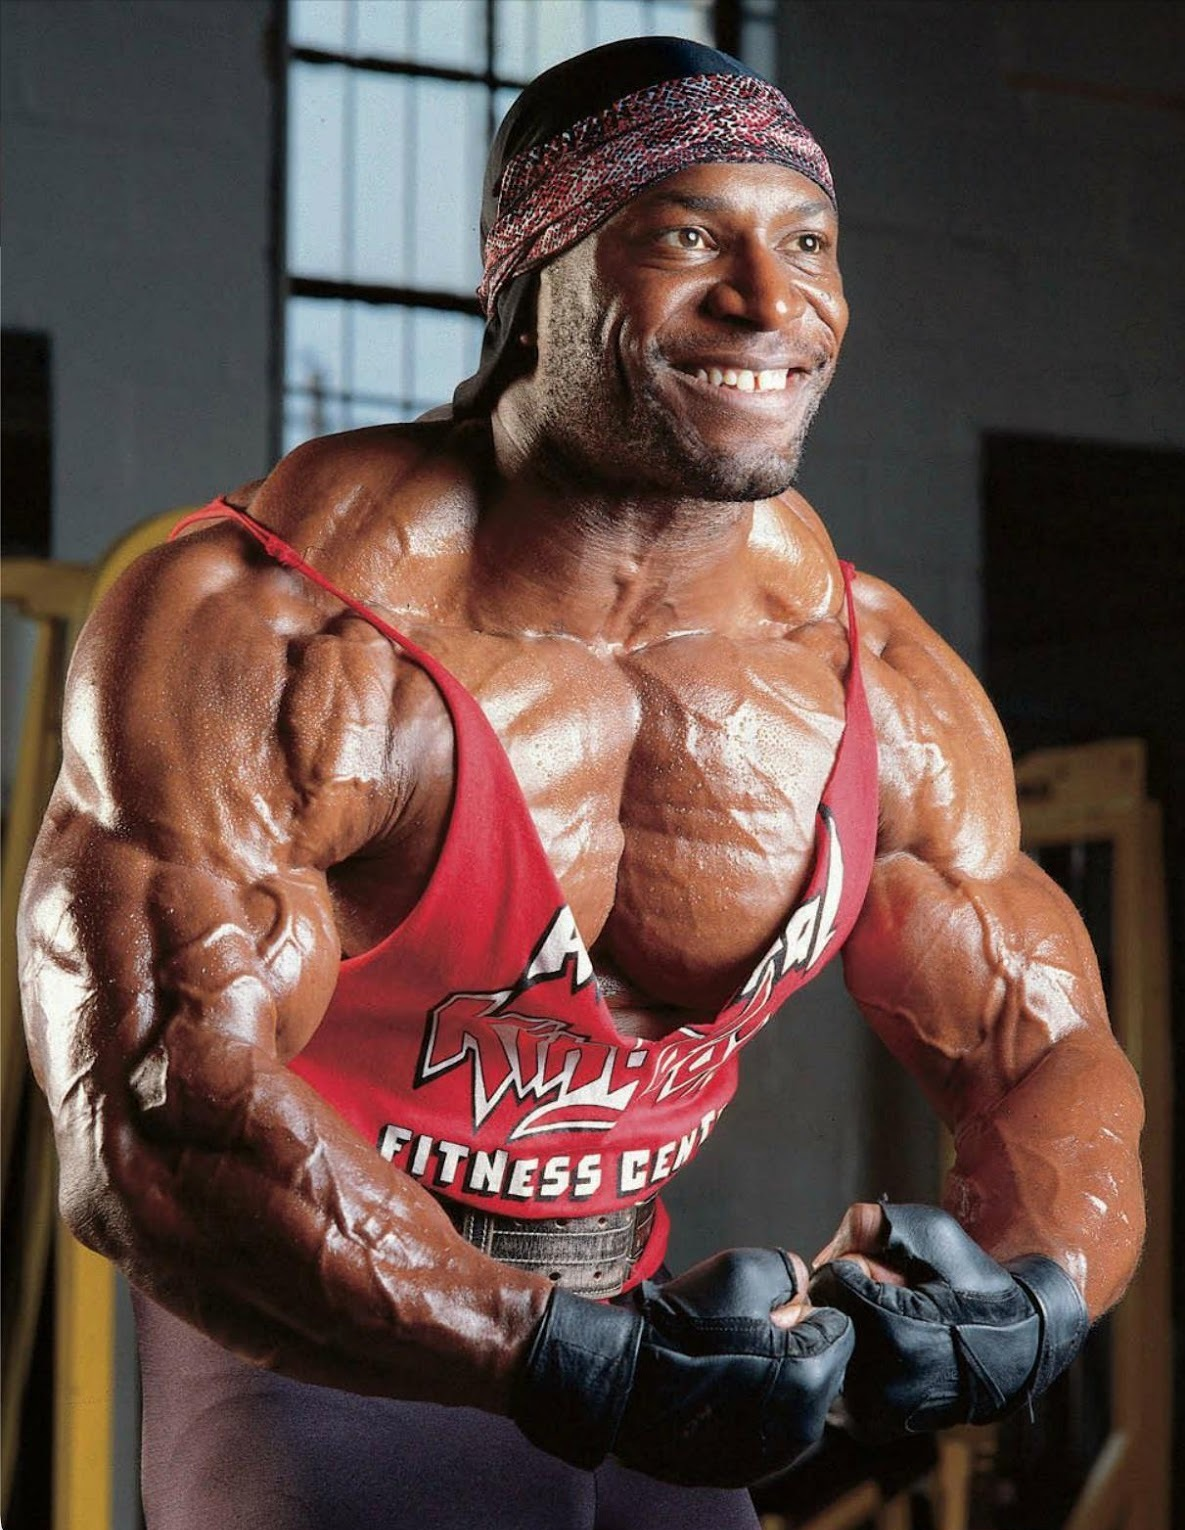 body builder lee haney Mr olympia flexing muscles in the gym